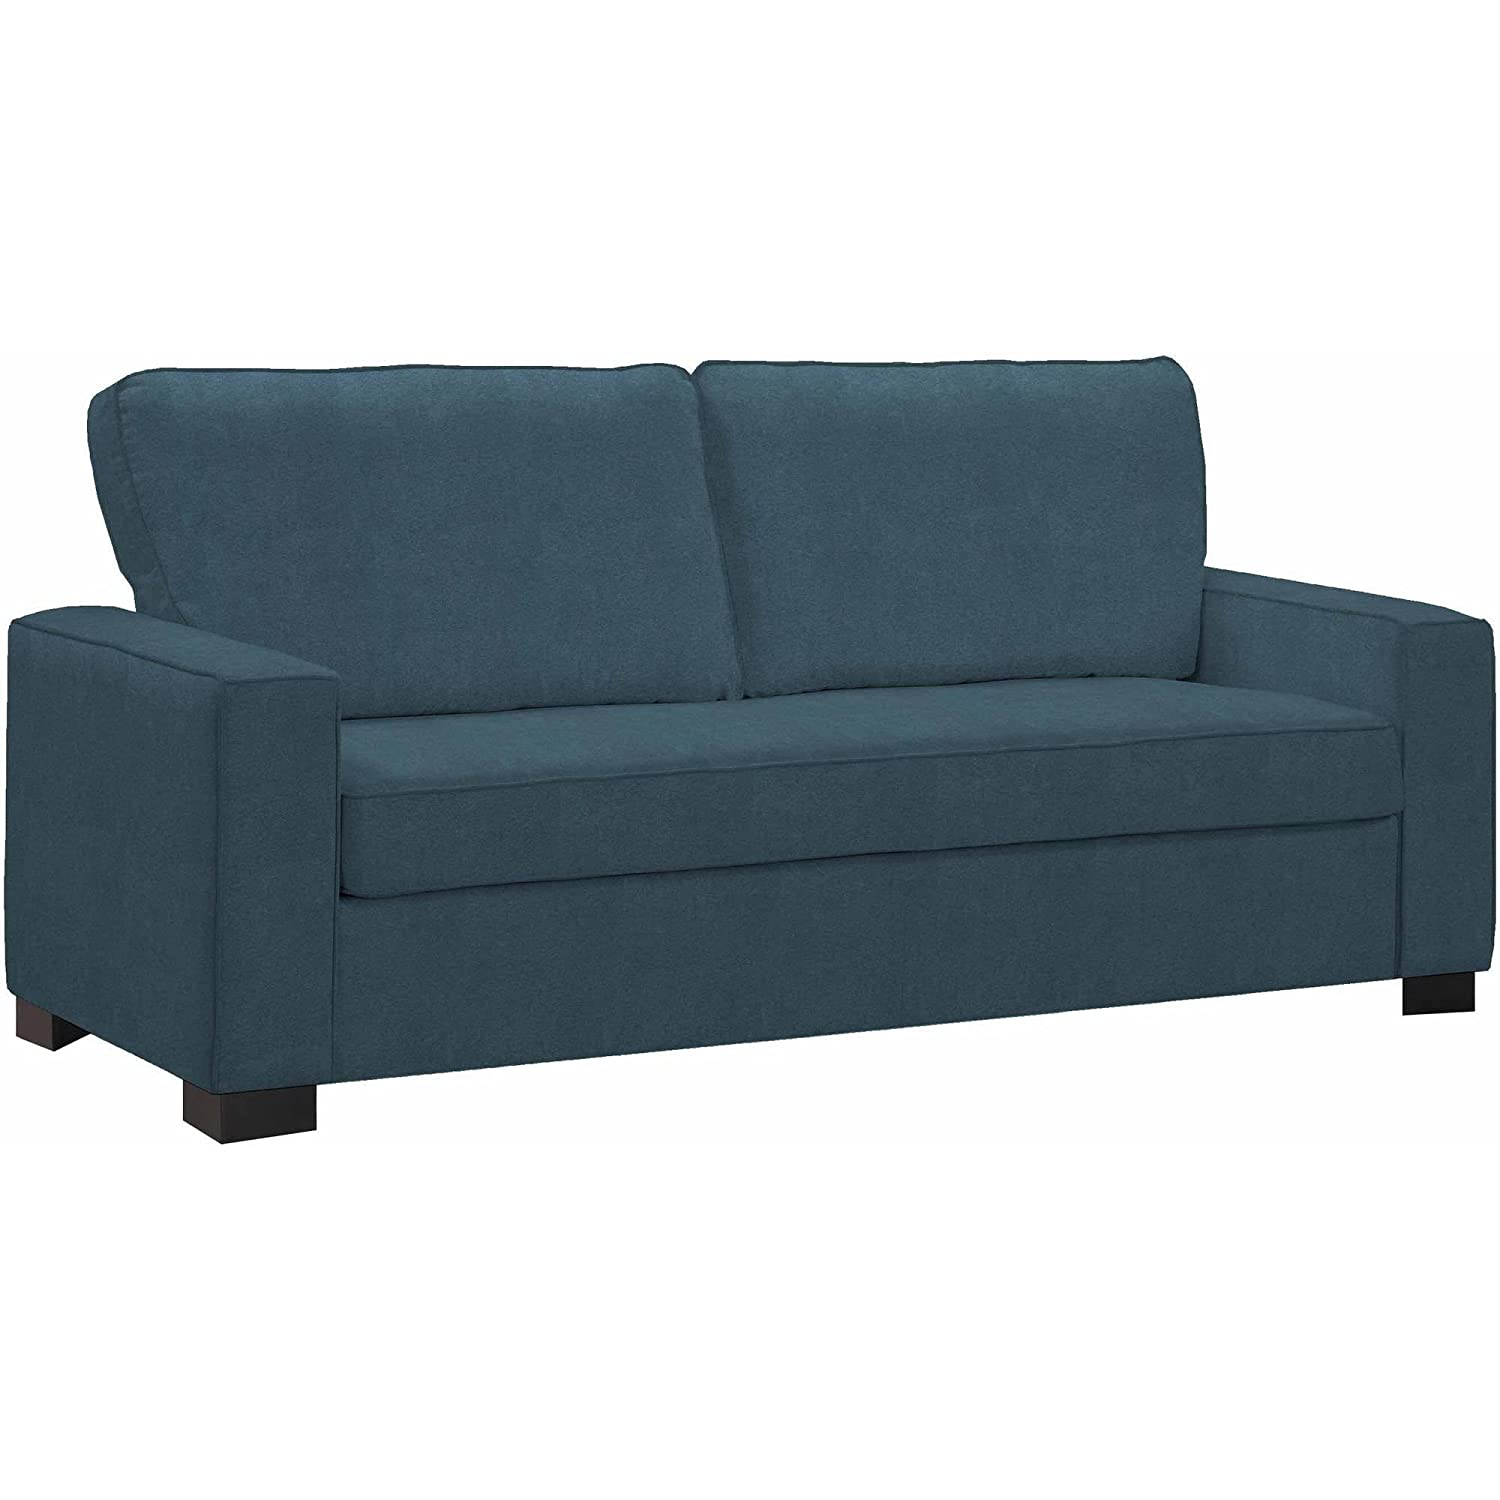 Amazon.com: Compact Blue Microfiber Sofa, Pocketed Coils, Living ...